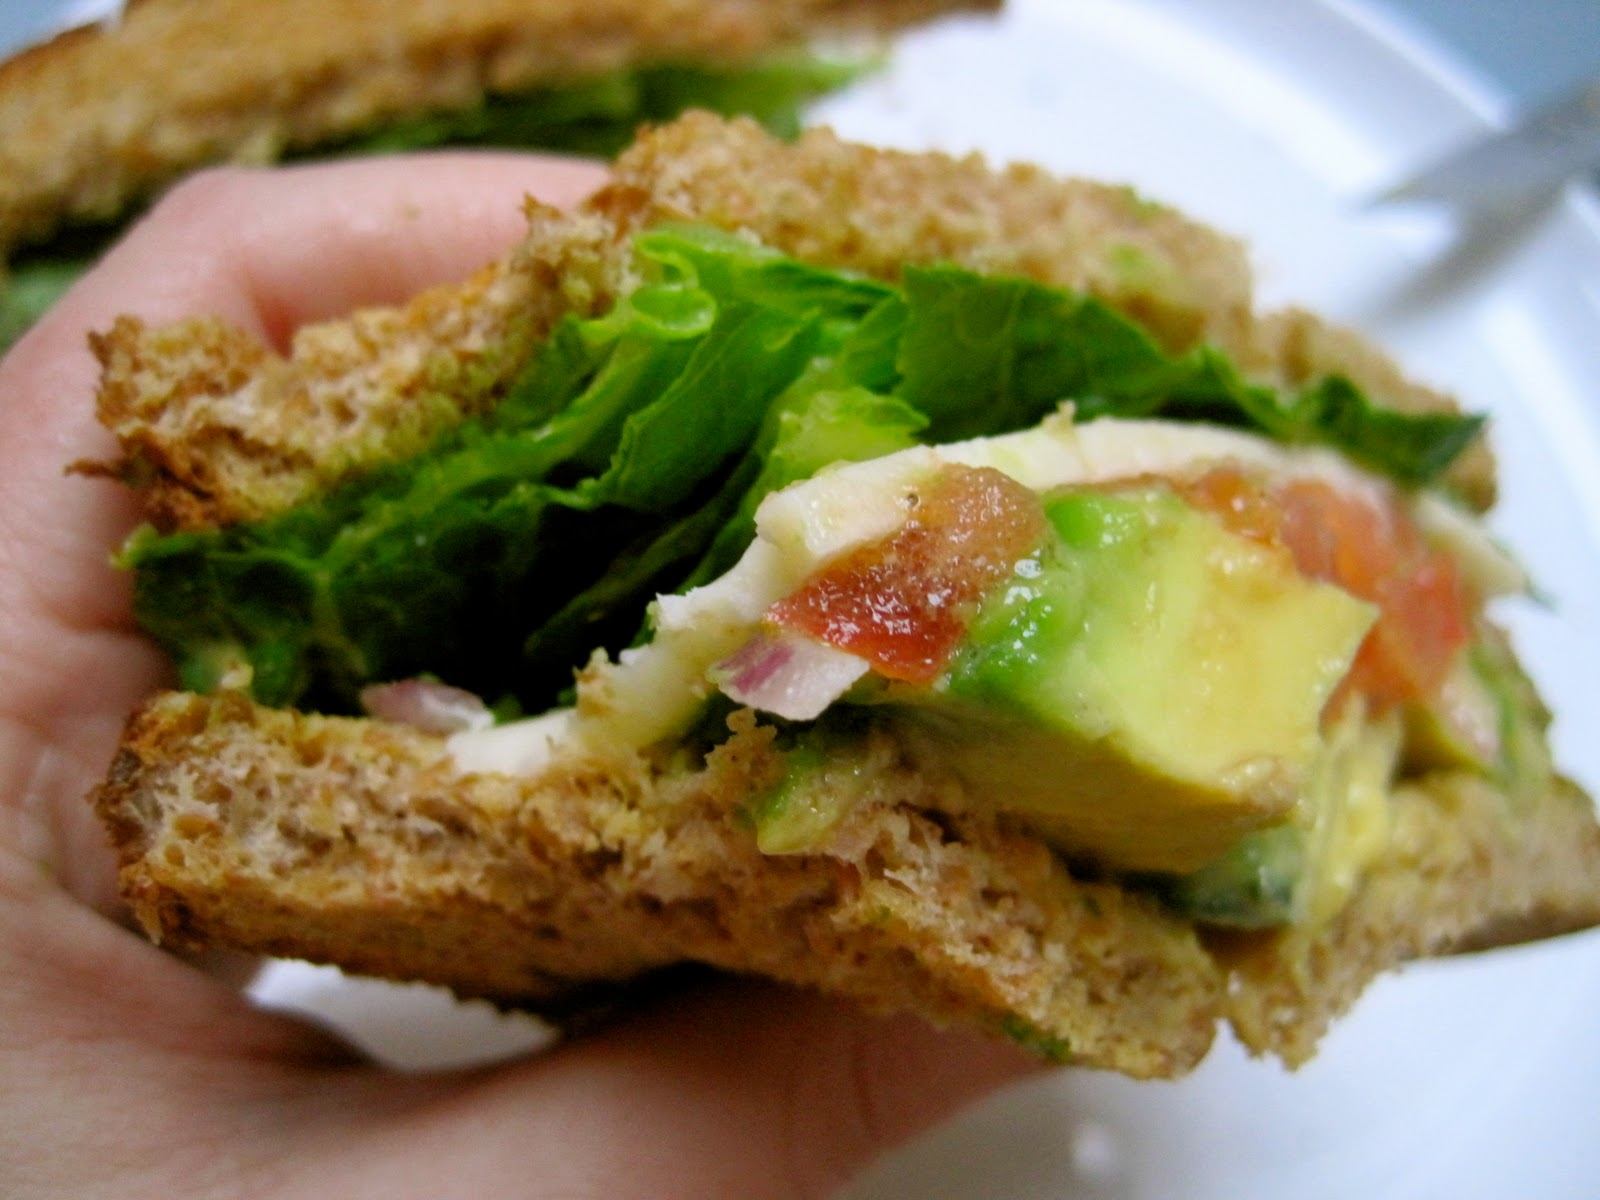 Avocado Cheddar Sandwich: Who Needs a Deli When You Can Have This?